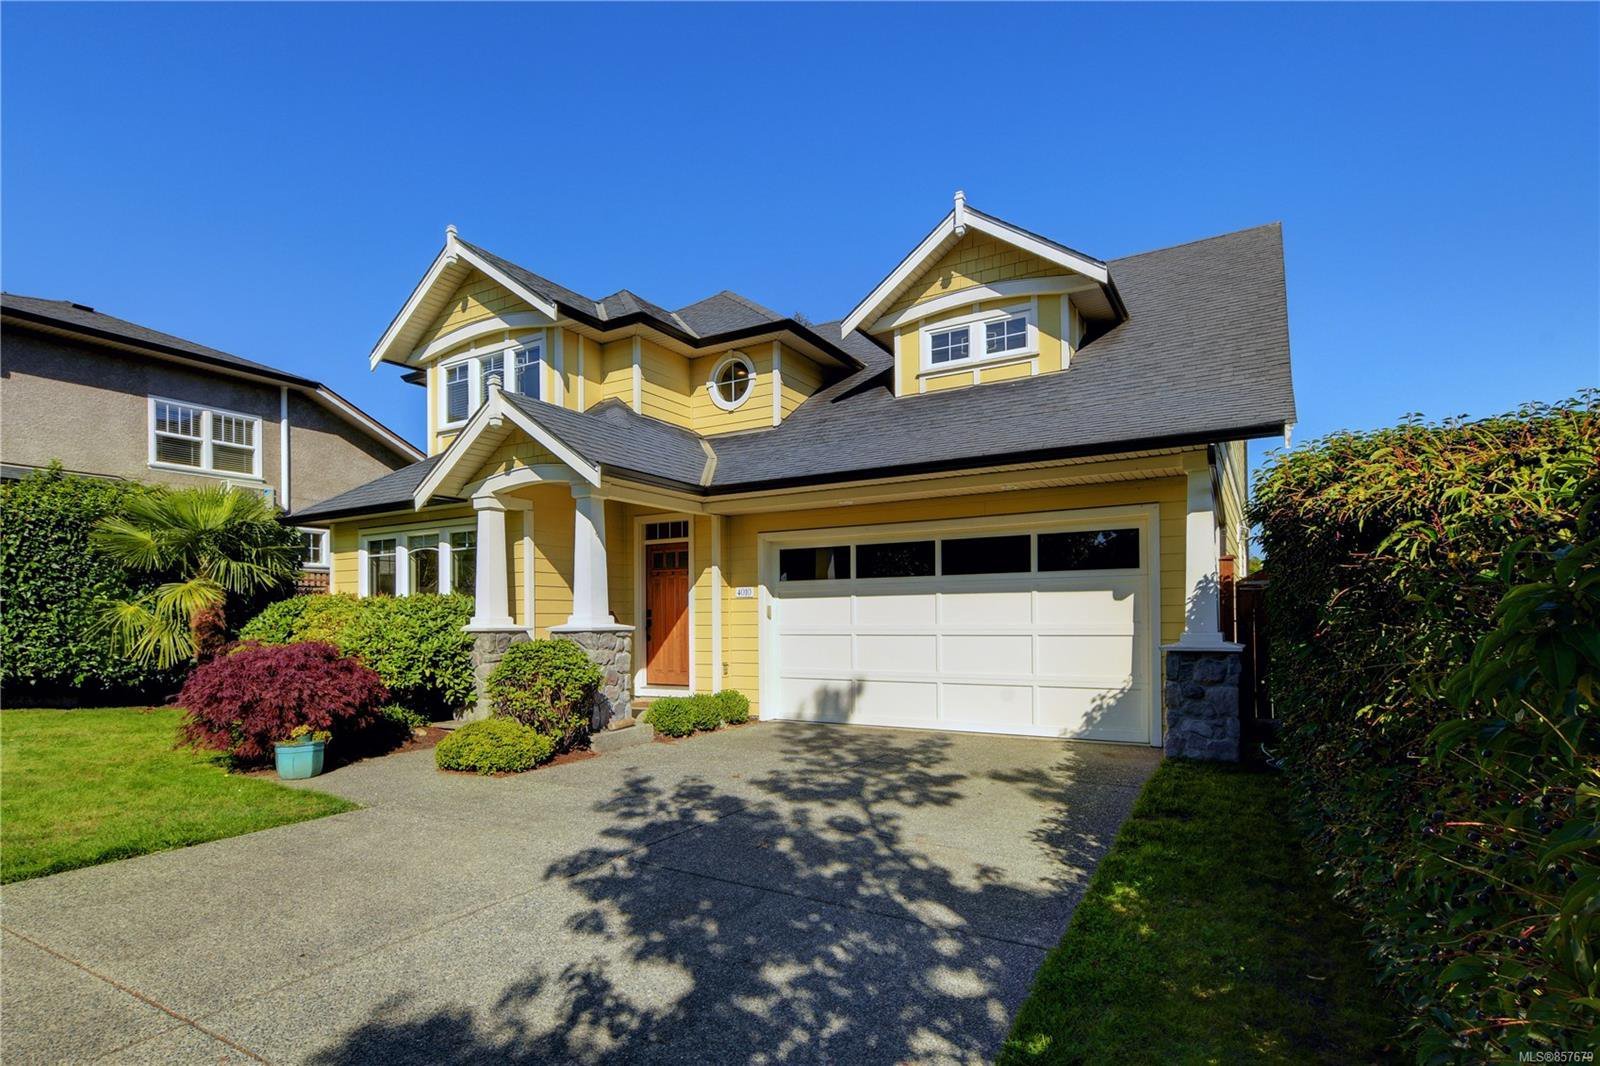 Main Photo: 4010 South Valley Dr in : SW Strawberry Vale House for sale (Saanich West)  : MLS®# 857679